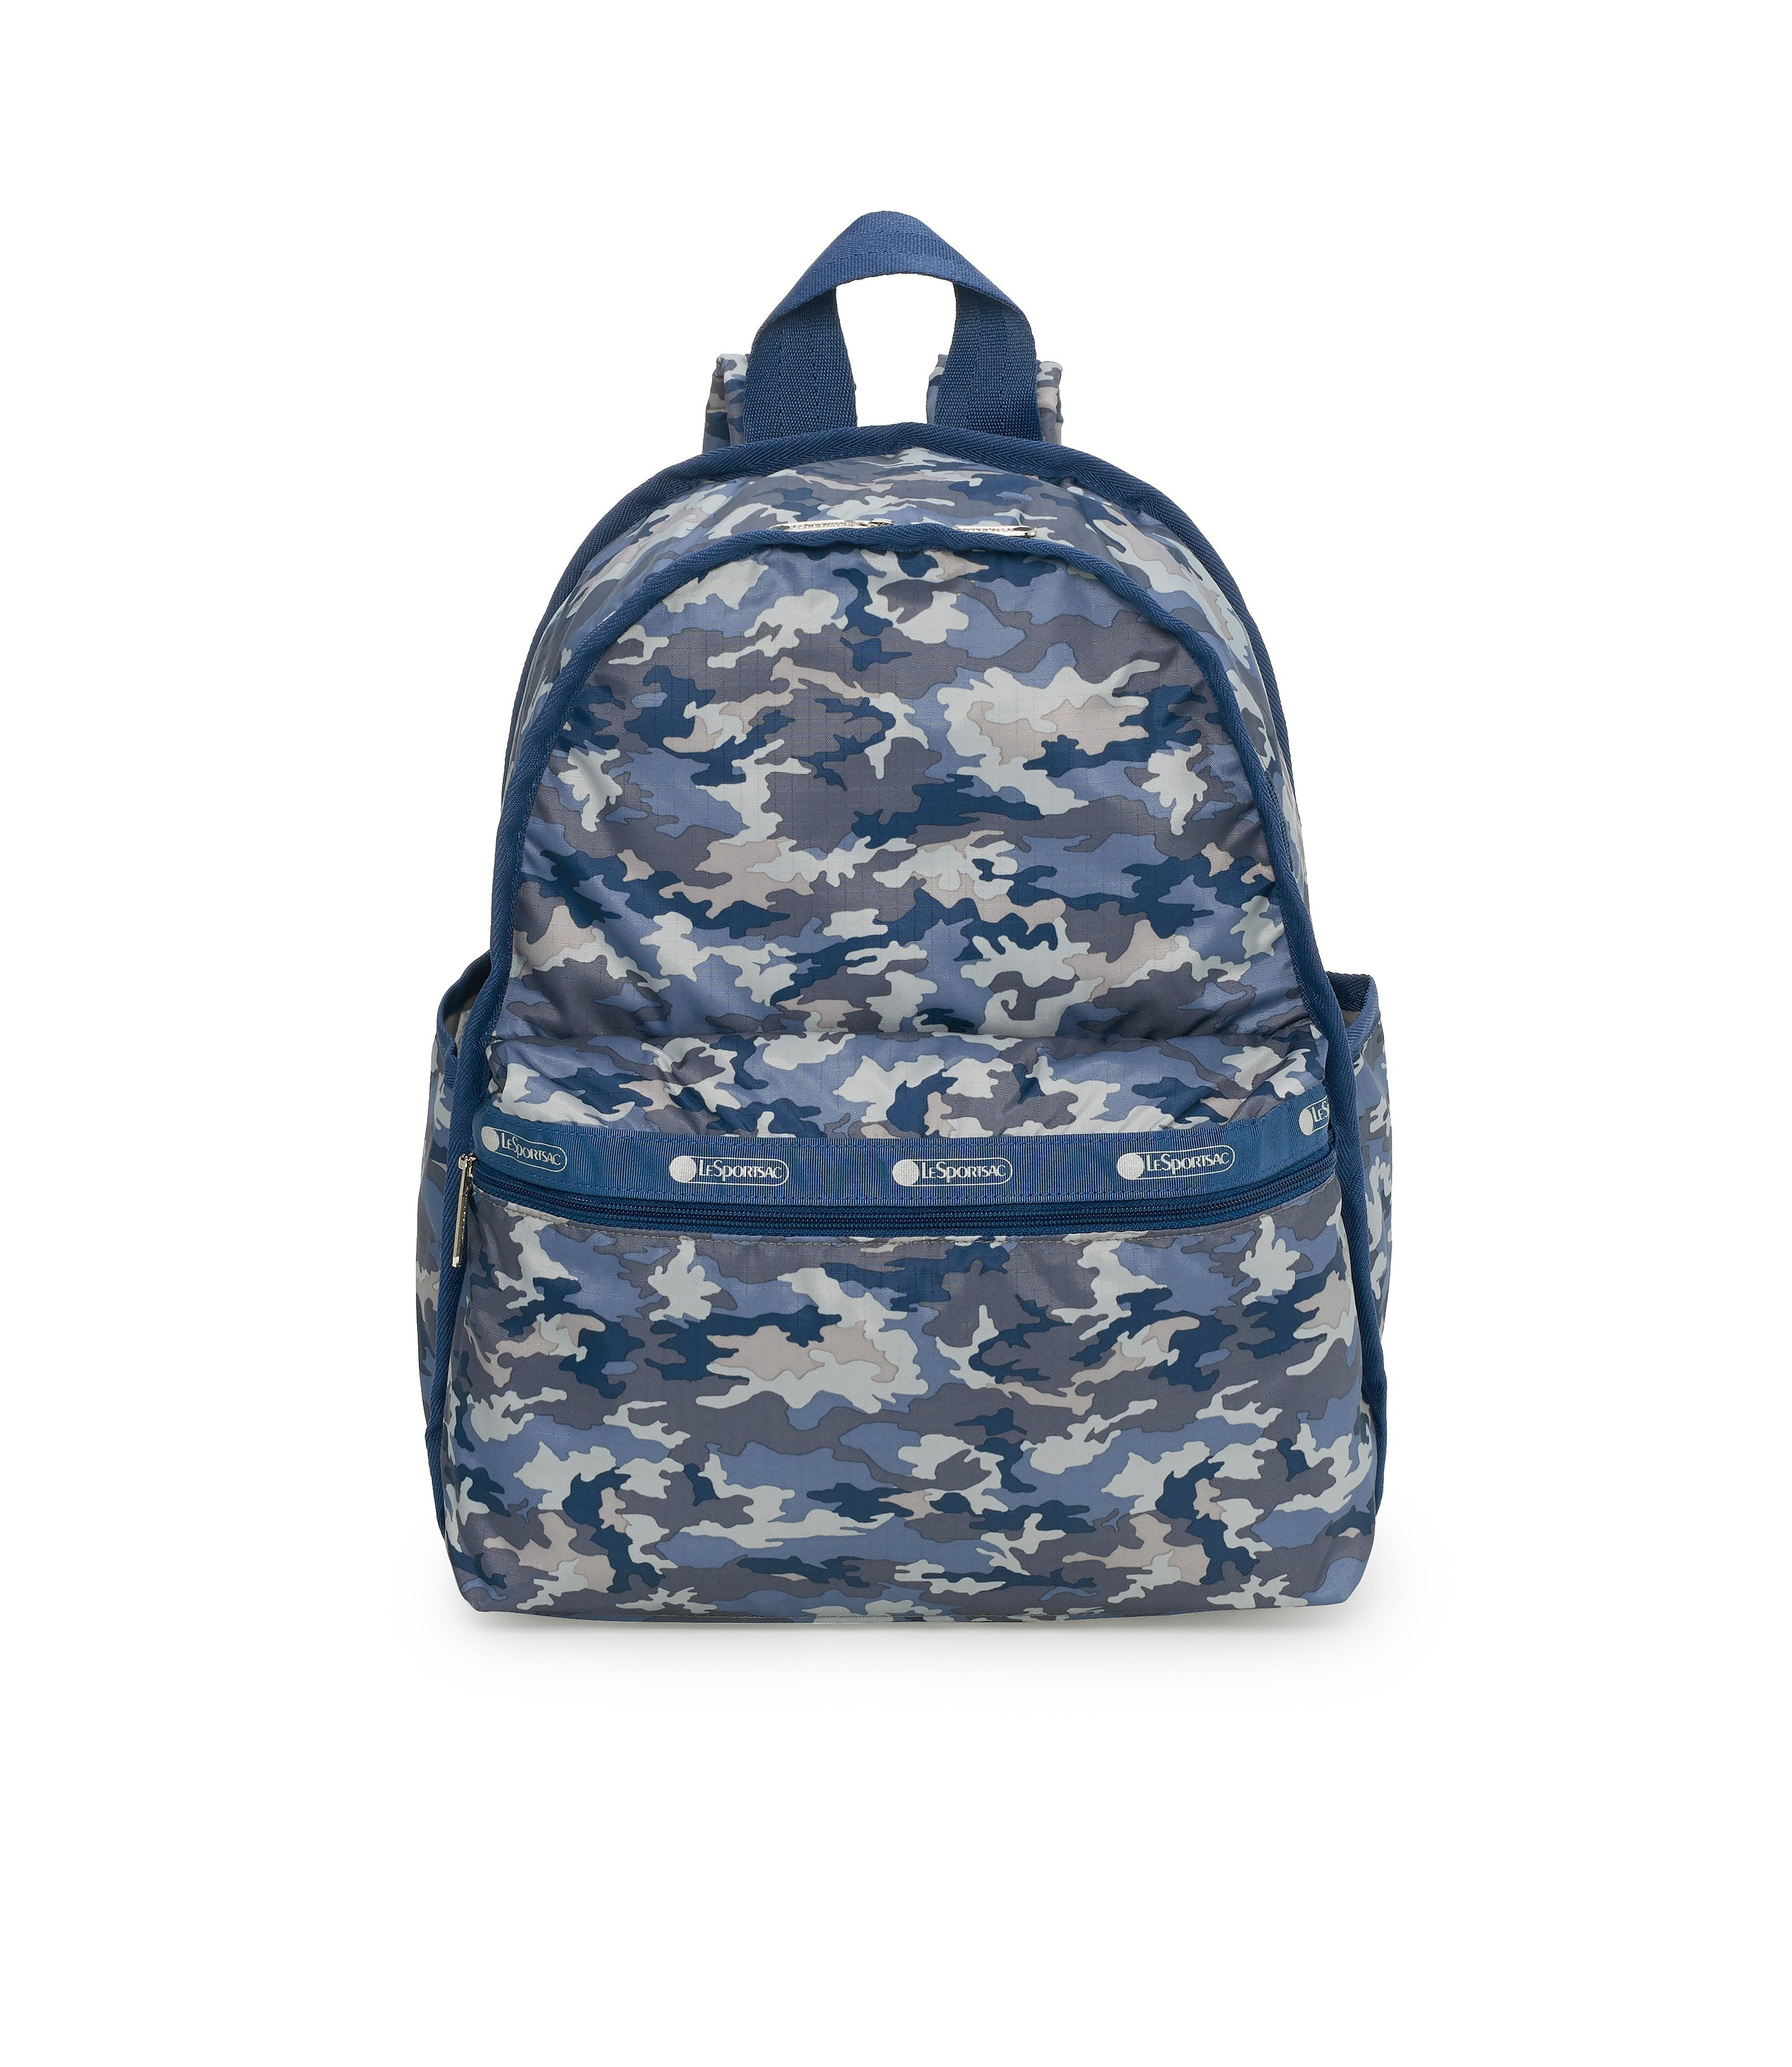 Basic Backpacks, Water Resistant Backpack, LeSportsac, Camo Blues print